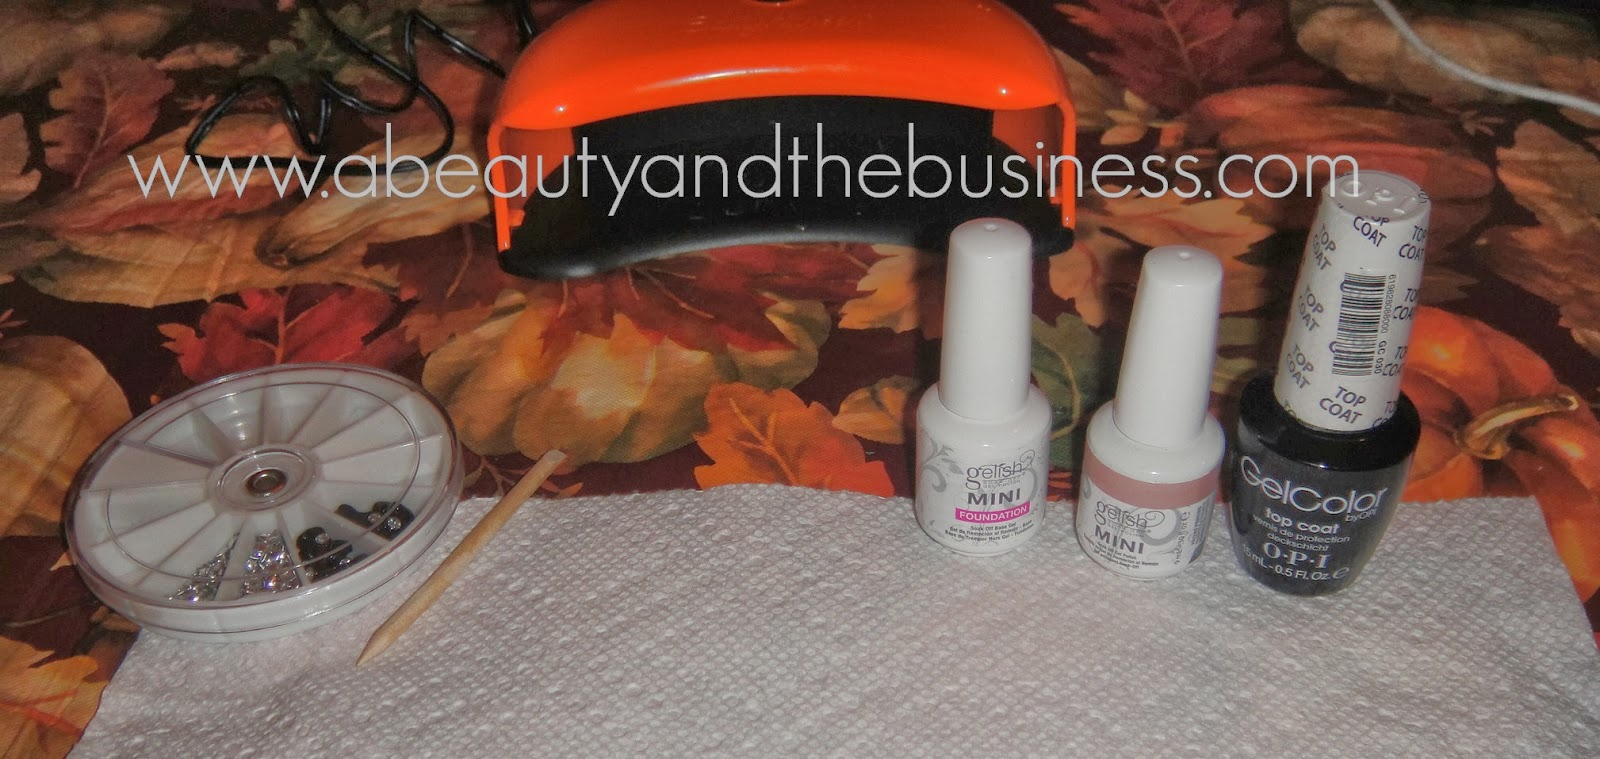 Gelish, Gelish Skinny Vanilla Latte, Gelish Skinny Vanilla Latte swatch, gelish nail art, Gelish gel polish, Gel polish nail art, OPI top coat, Gelish foundations, born pretty store haul, , nail art, nail bows